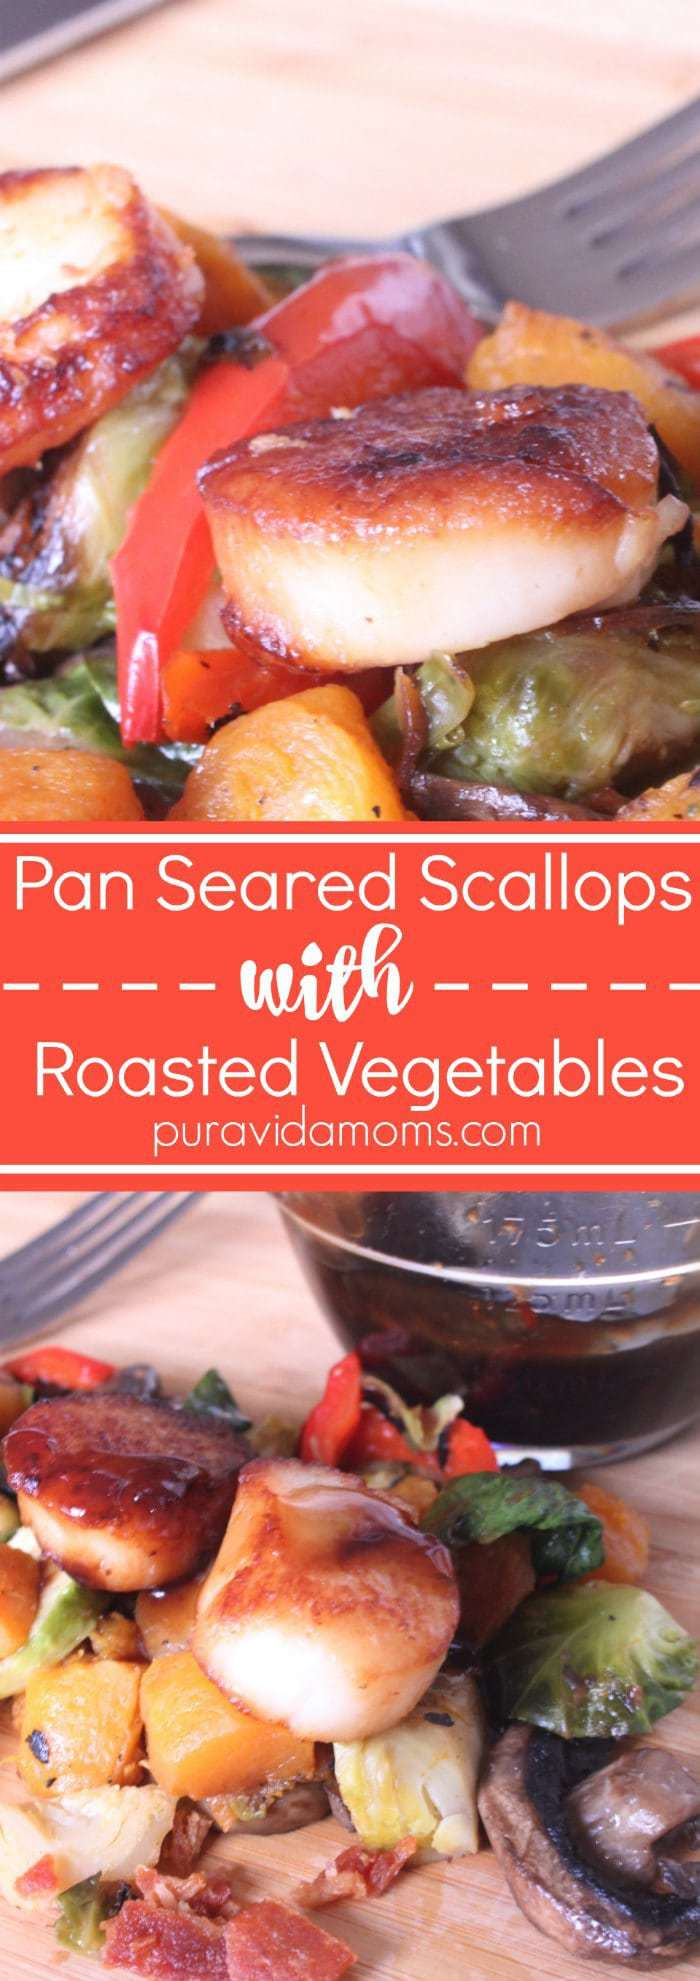 Pan Seared Scallops With Roasted Vegetables Dinner Recipe